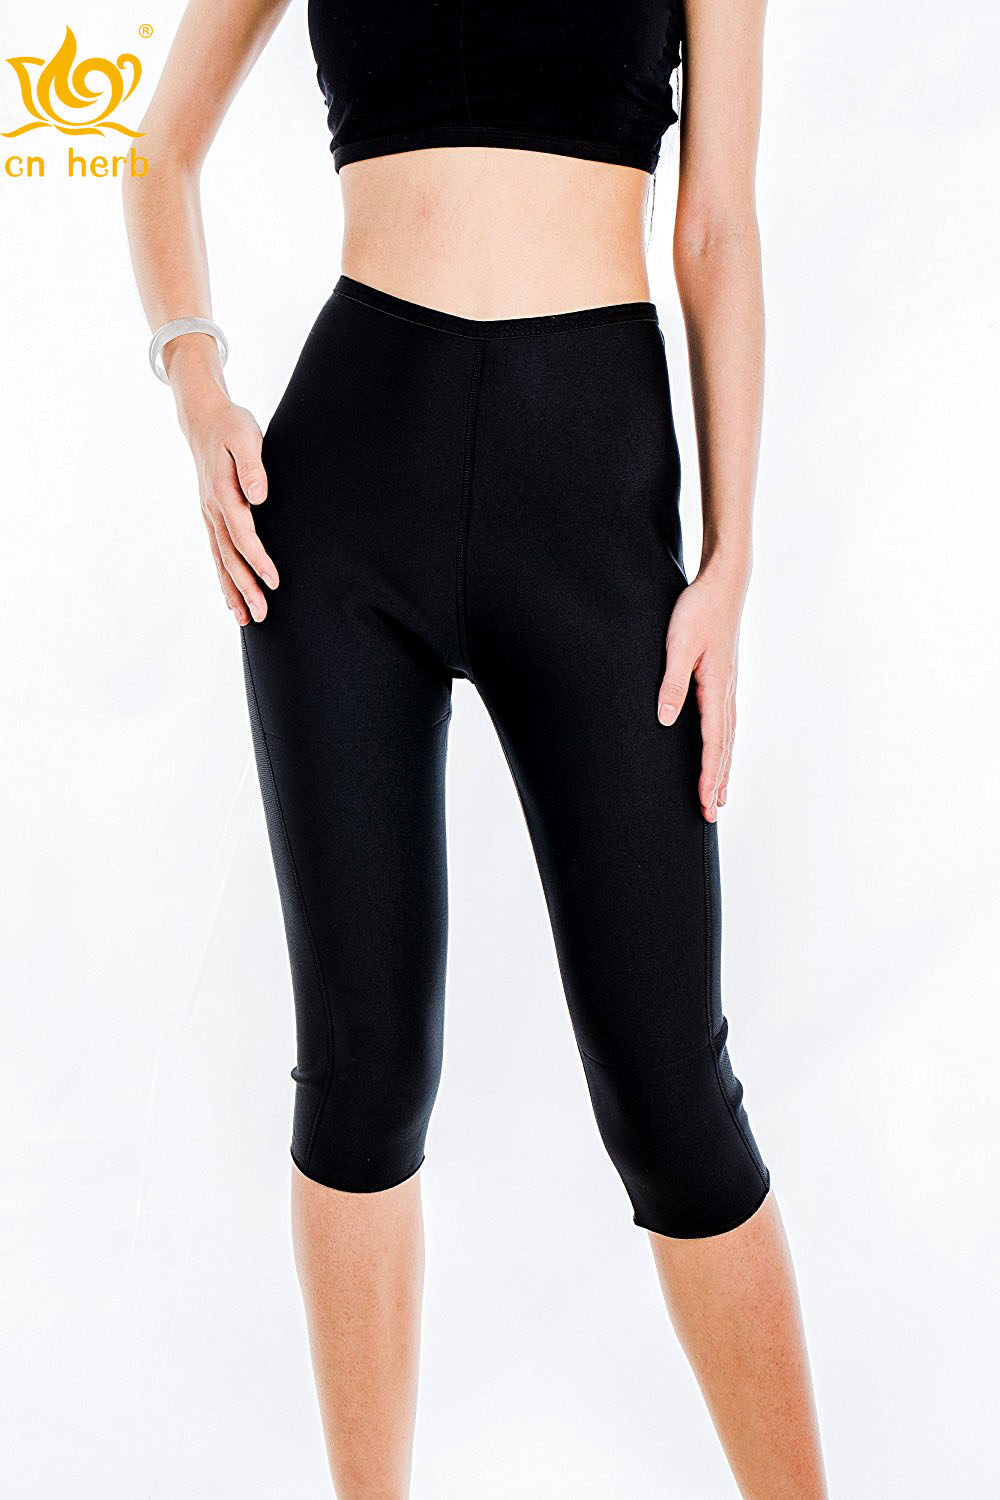 83b578a8b8 Cn Herb Valentina Womens Slimming Pants Hot Thermo Neoprene Sweat Sauna Body  Shapers Free Shipping -in Slimming Product from Beauty   Health on ...